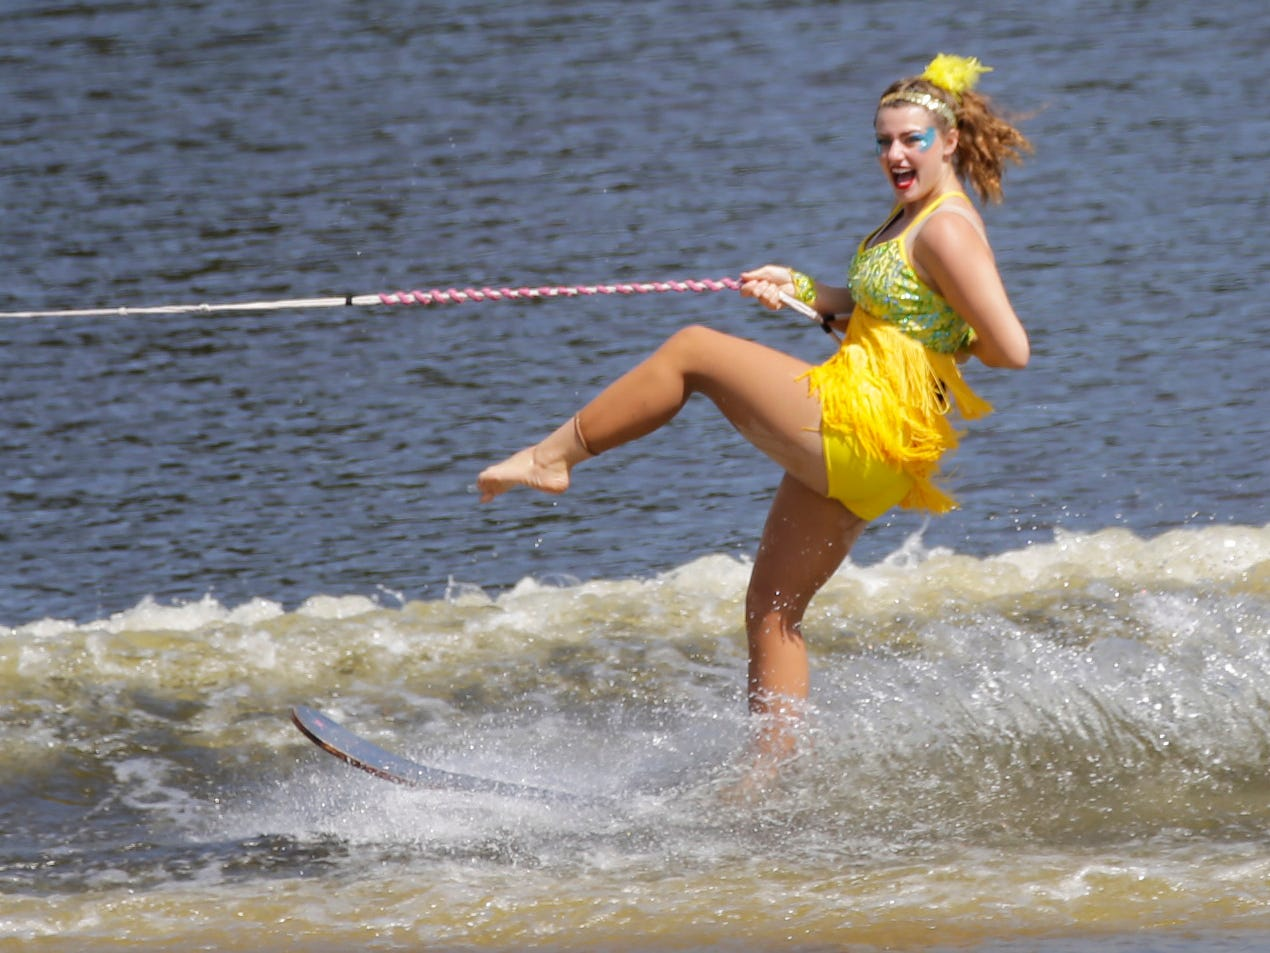 Demi DeBelak competes in the swivel category during the Wisconsin State Water Ski Show Championships on Lake Wazeecha in Kellner Thursday, July 19, 2018.